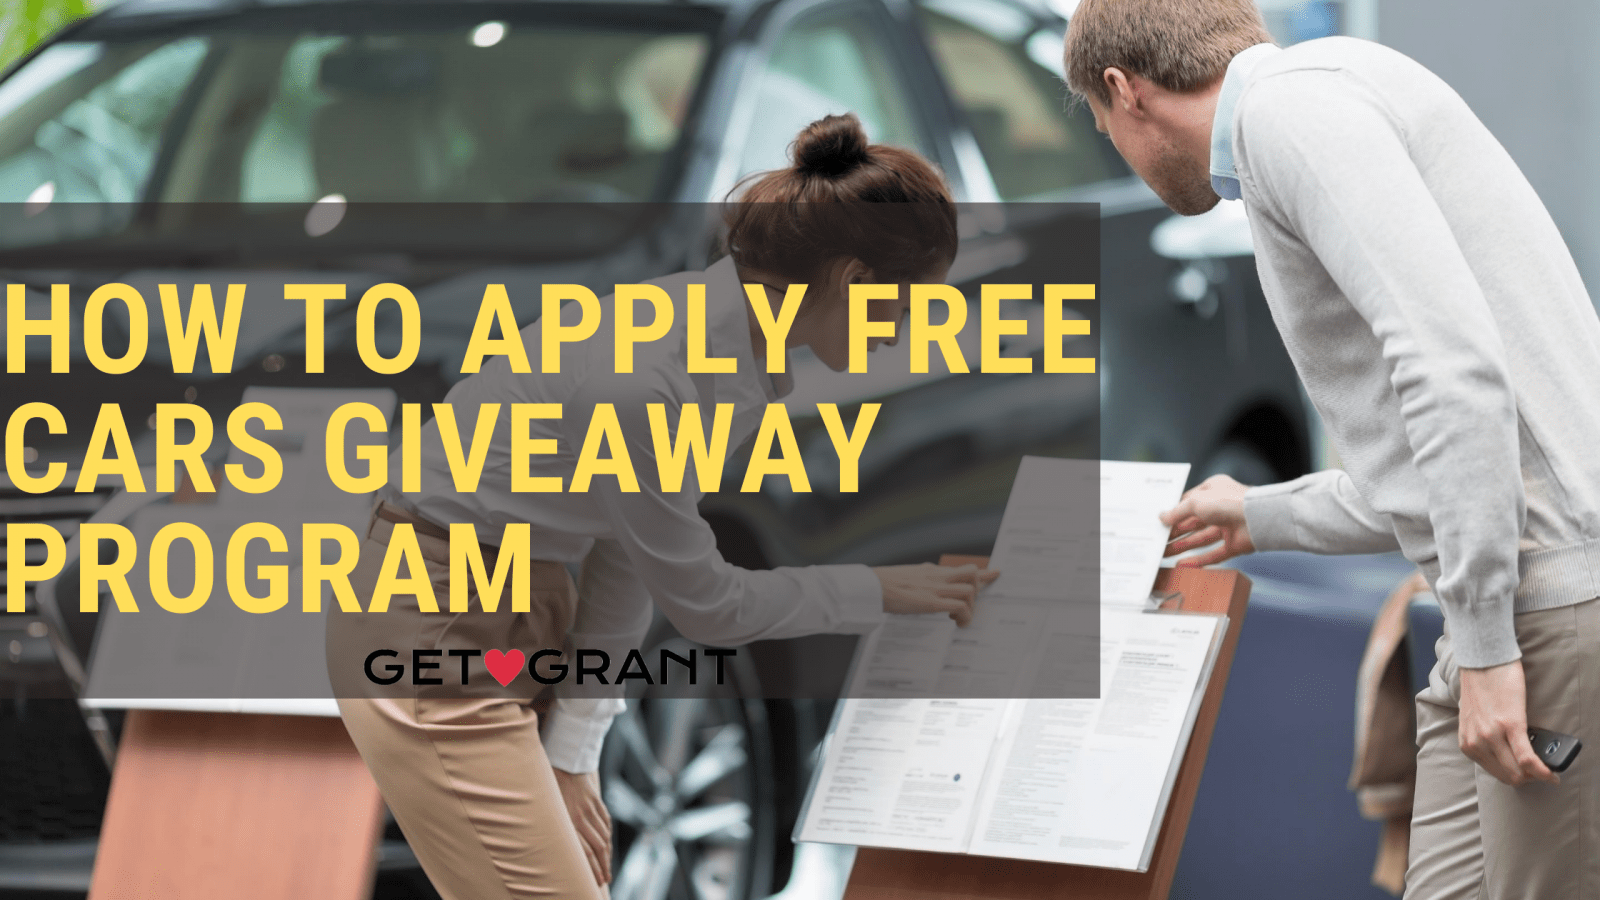 How to Apply Free Cars giveaway program